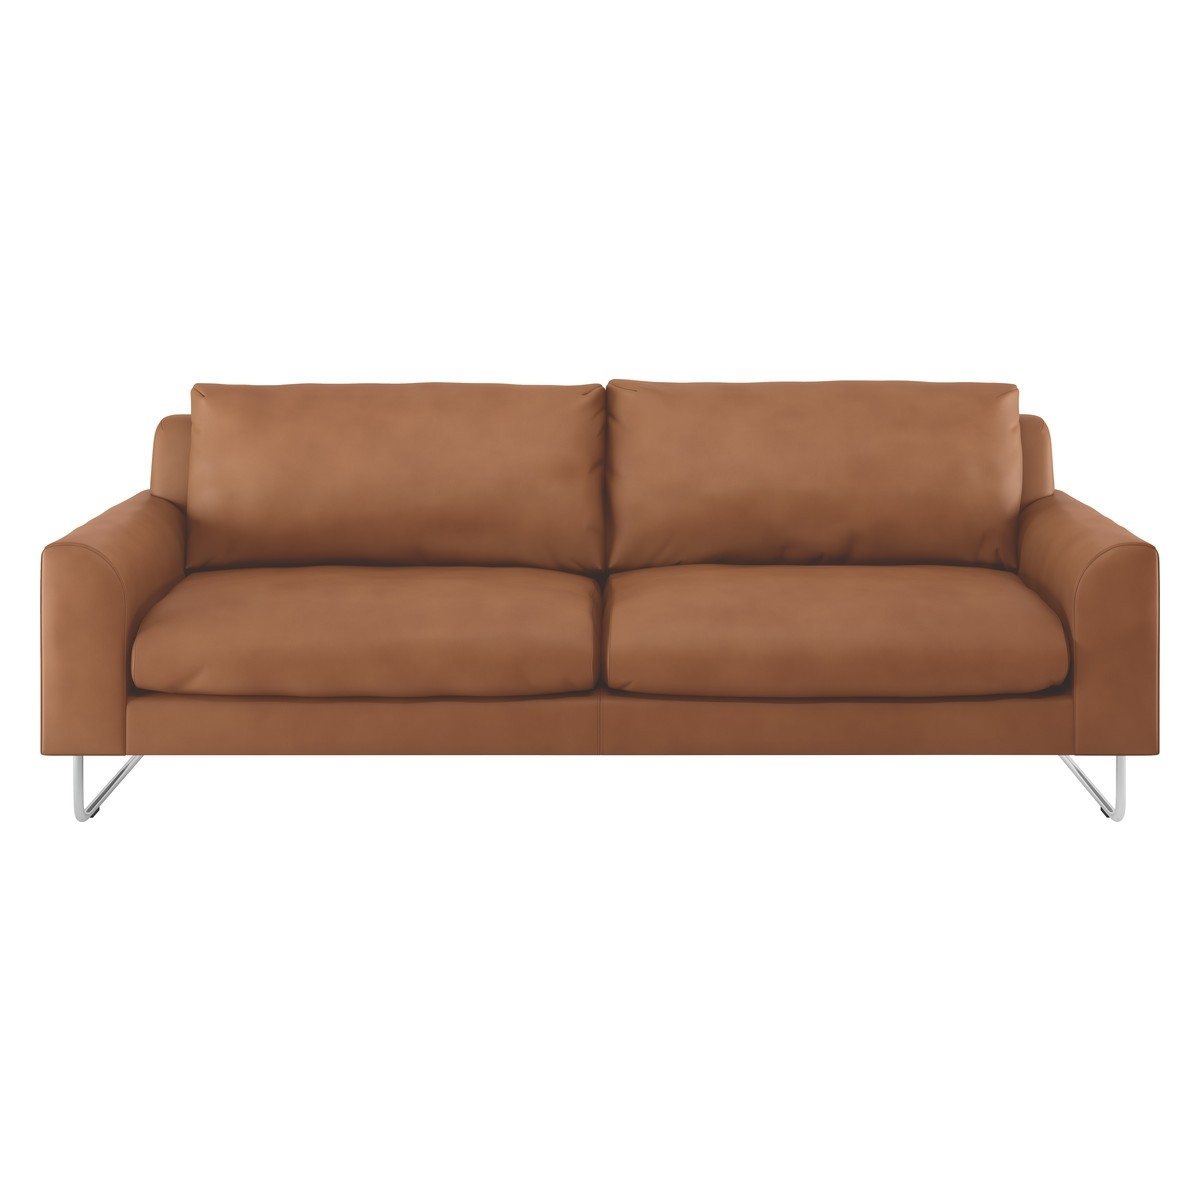 Lyle Tan Premium Leather 3 Seater Sofa Buy Now At Habitat Uk With Three Seater Sofas (Image 12 of 15)